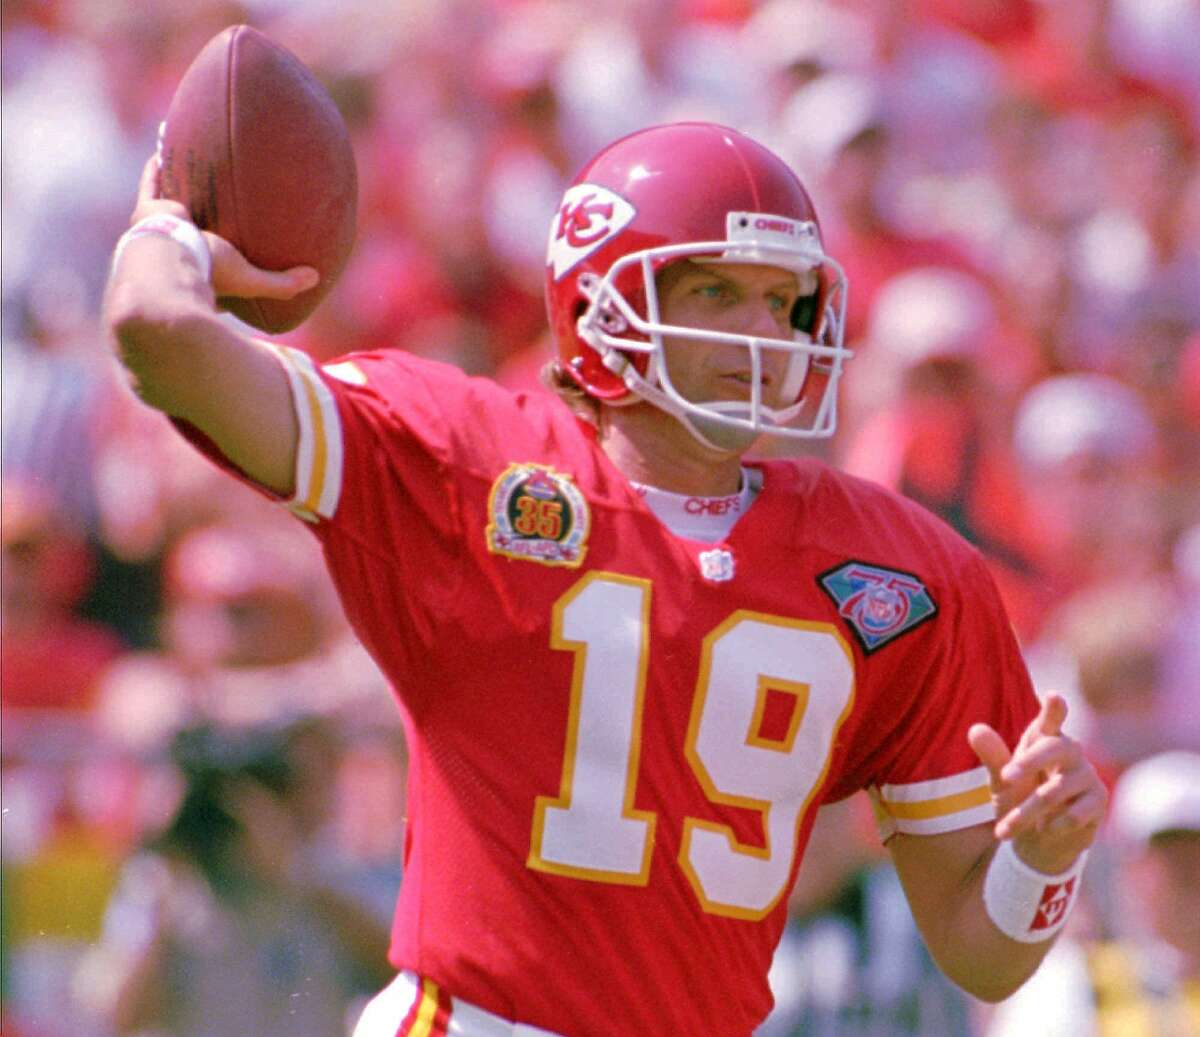 FILE--Kansas City Chiefs quarterback Joe Montana tosses a pass during the first half of Sunday's game, Sept. 11, 1994, against the San Francisco 49ers at Arrowhead Stadium in Kansas City, Mo. his time, Joe is expected to go. Joe Montana's long-rumored retirement from football likely becomes official next week, the Los Angeles Times reported Tuesday. The newspaper said the quarterback's friends and family will be in San Francisco for the announcement. (AP Photo/Ed Zurga)